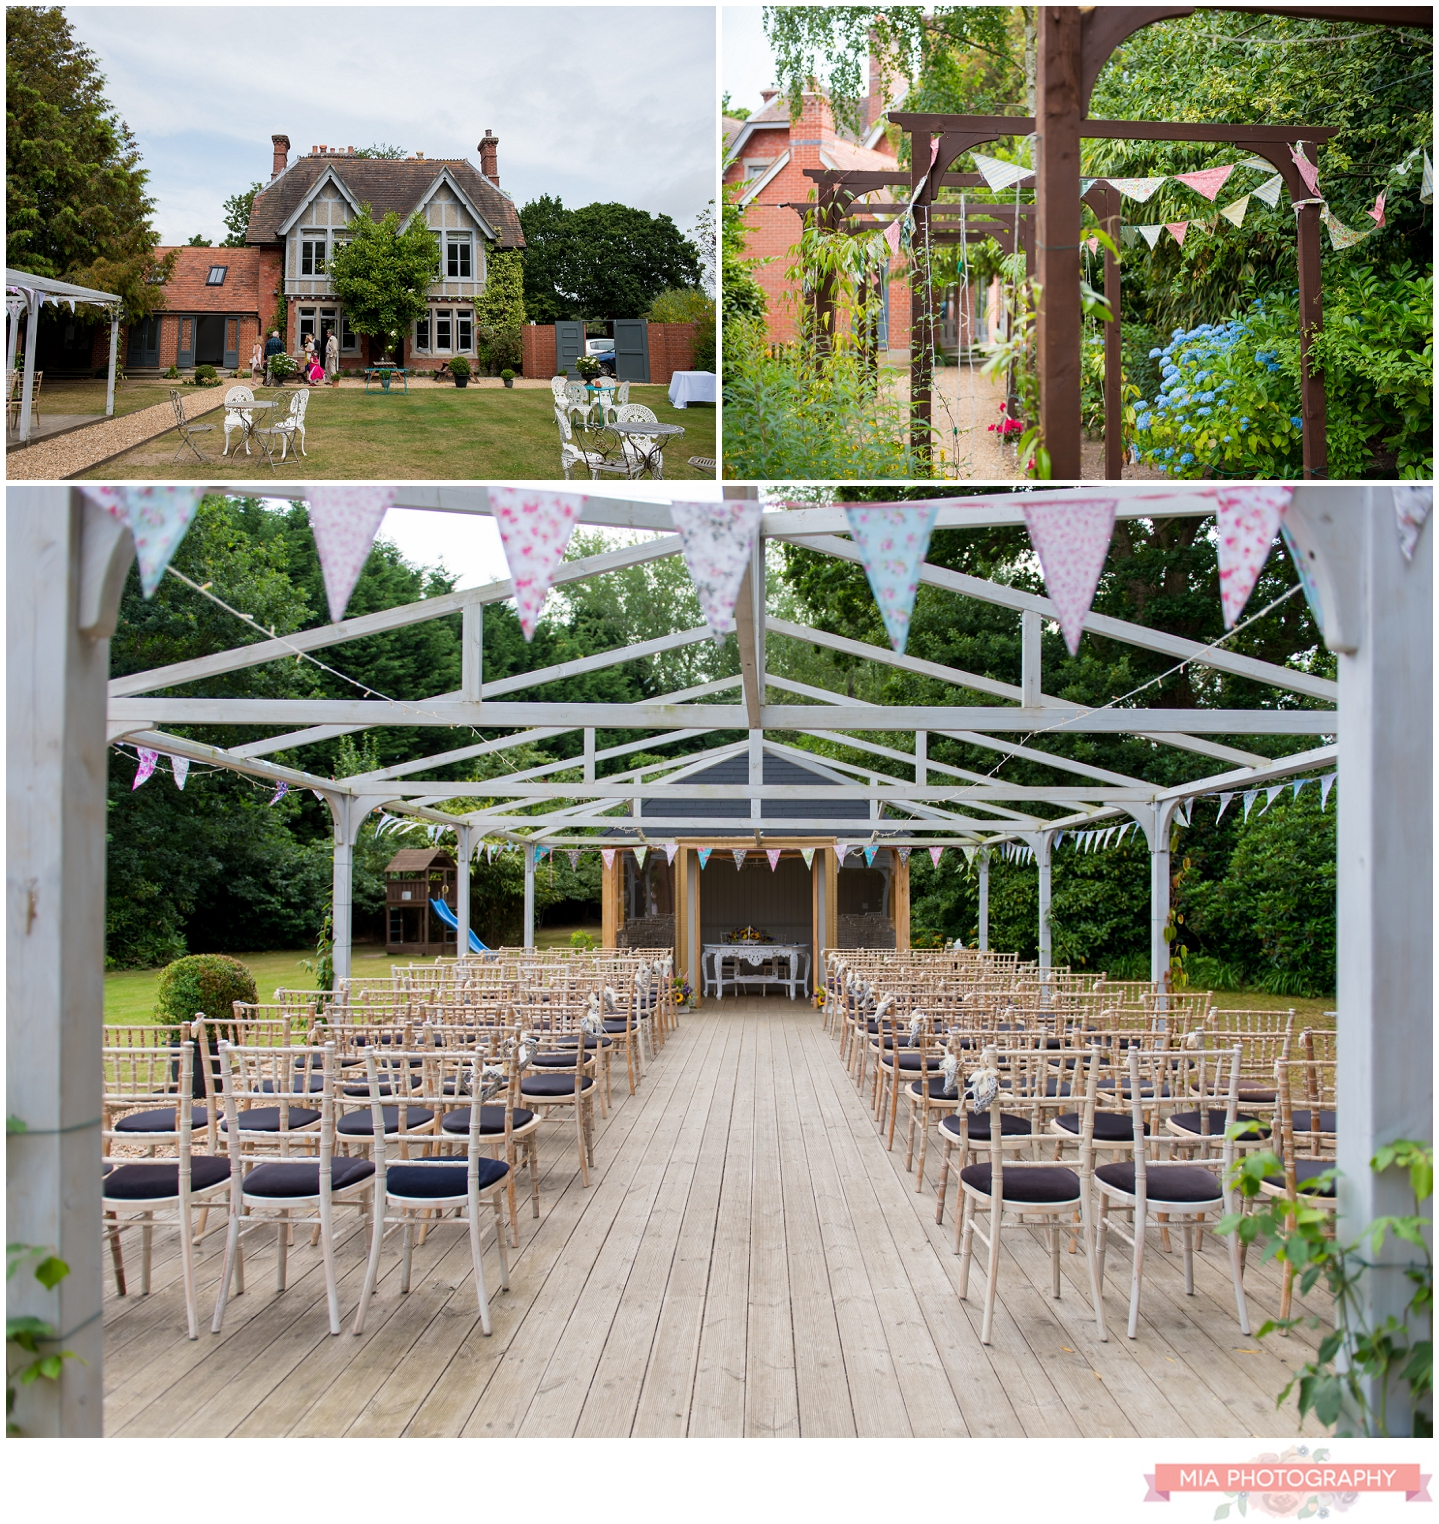 wedding photography at The Old Vicarage in christchurch